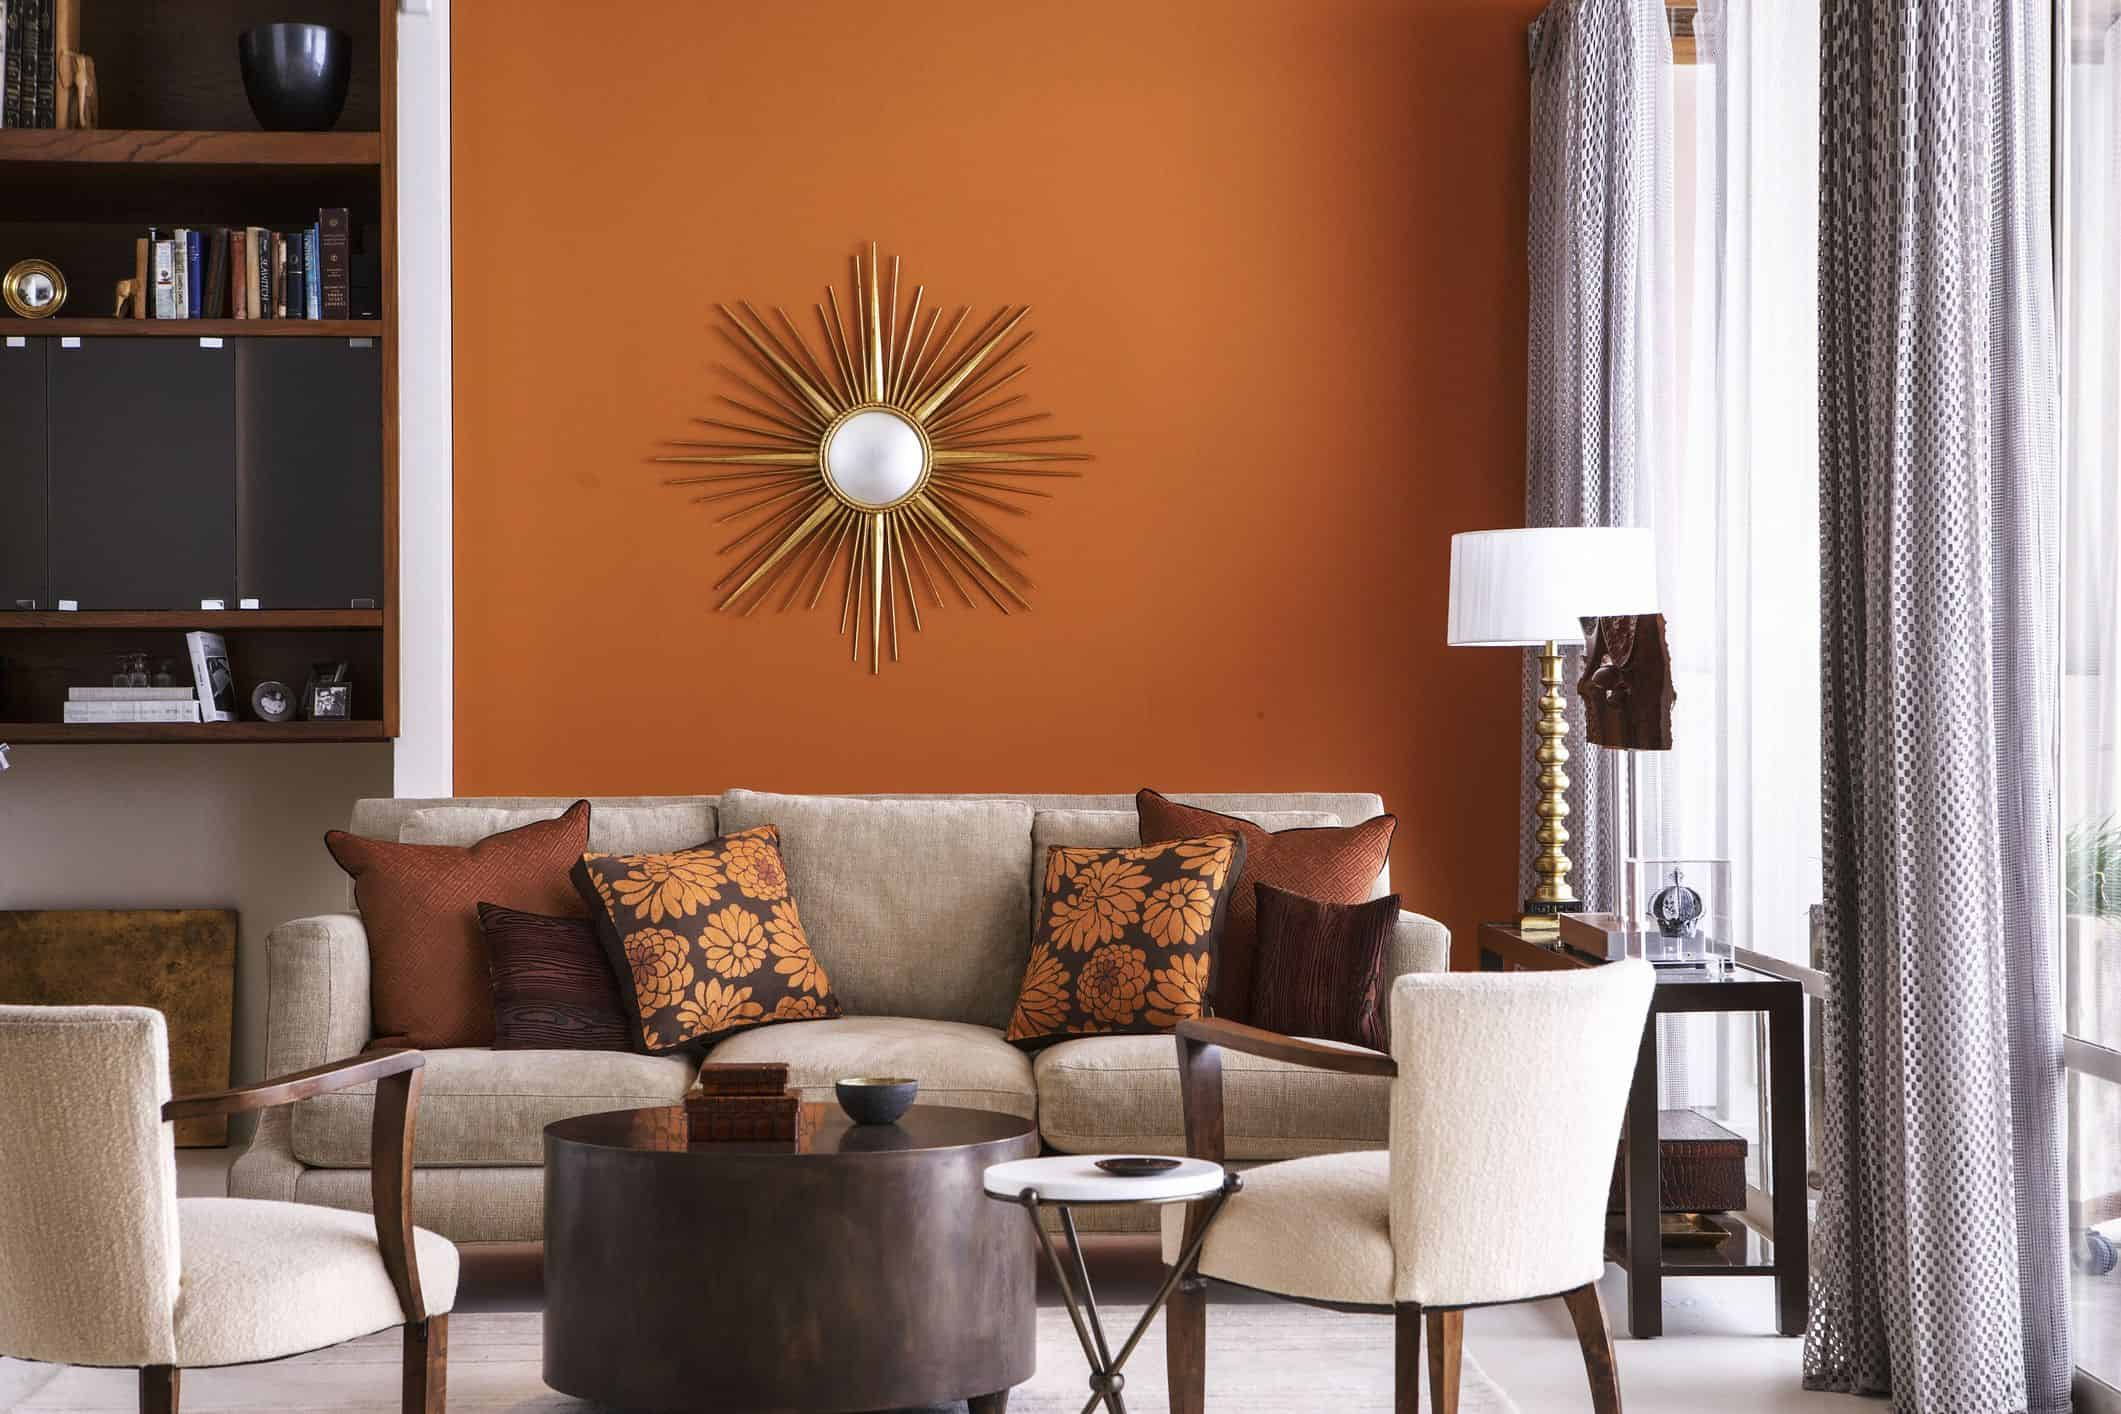 Warm hues are coming back with a vengeance to completely redesign the way warm tones are thought of when it comes to home decor.